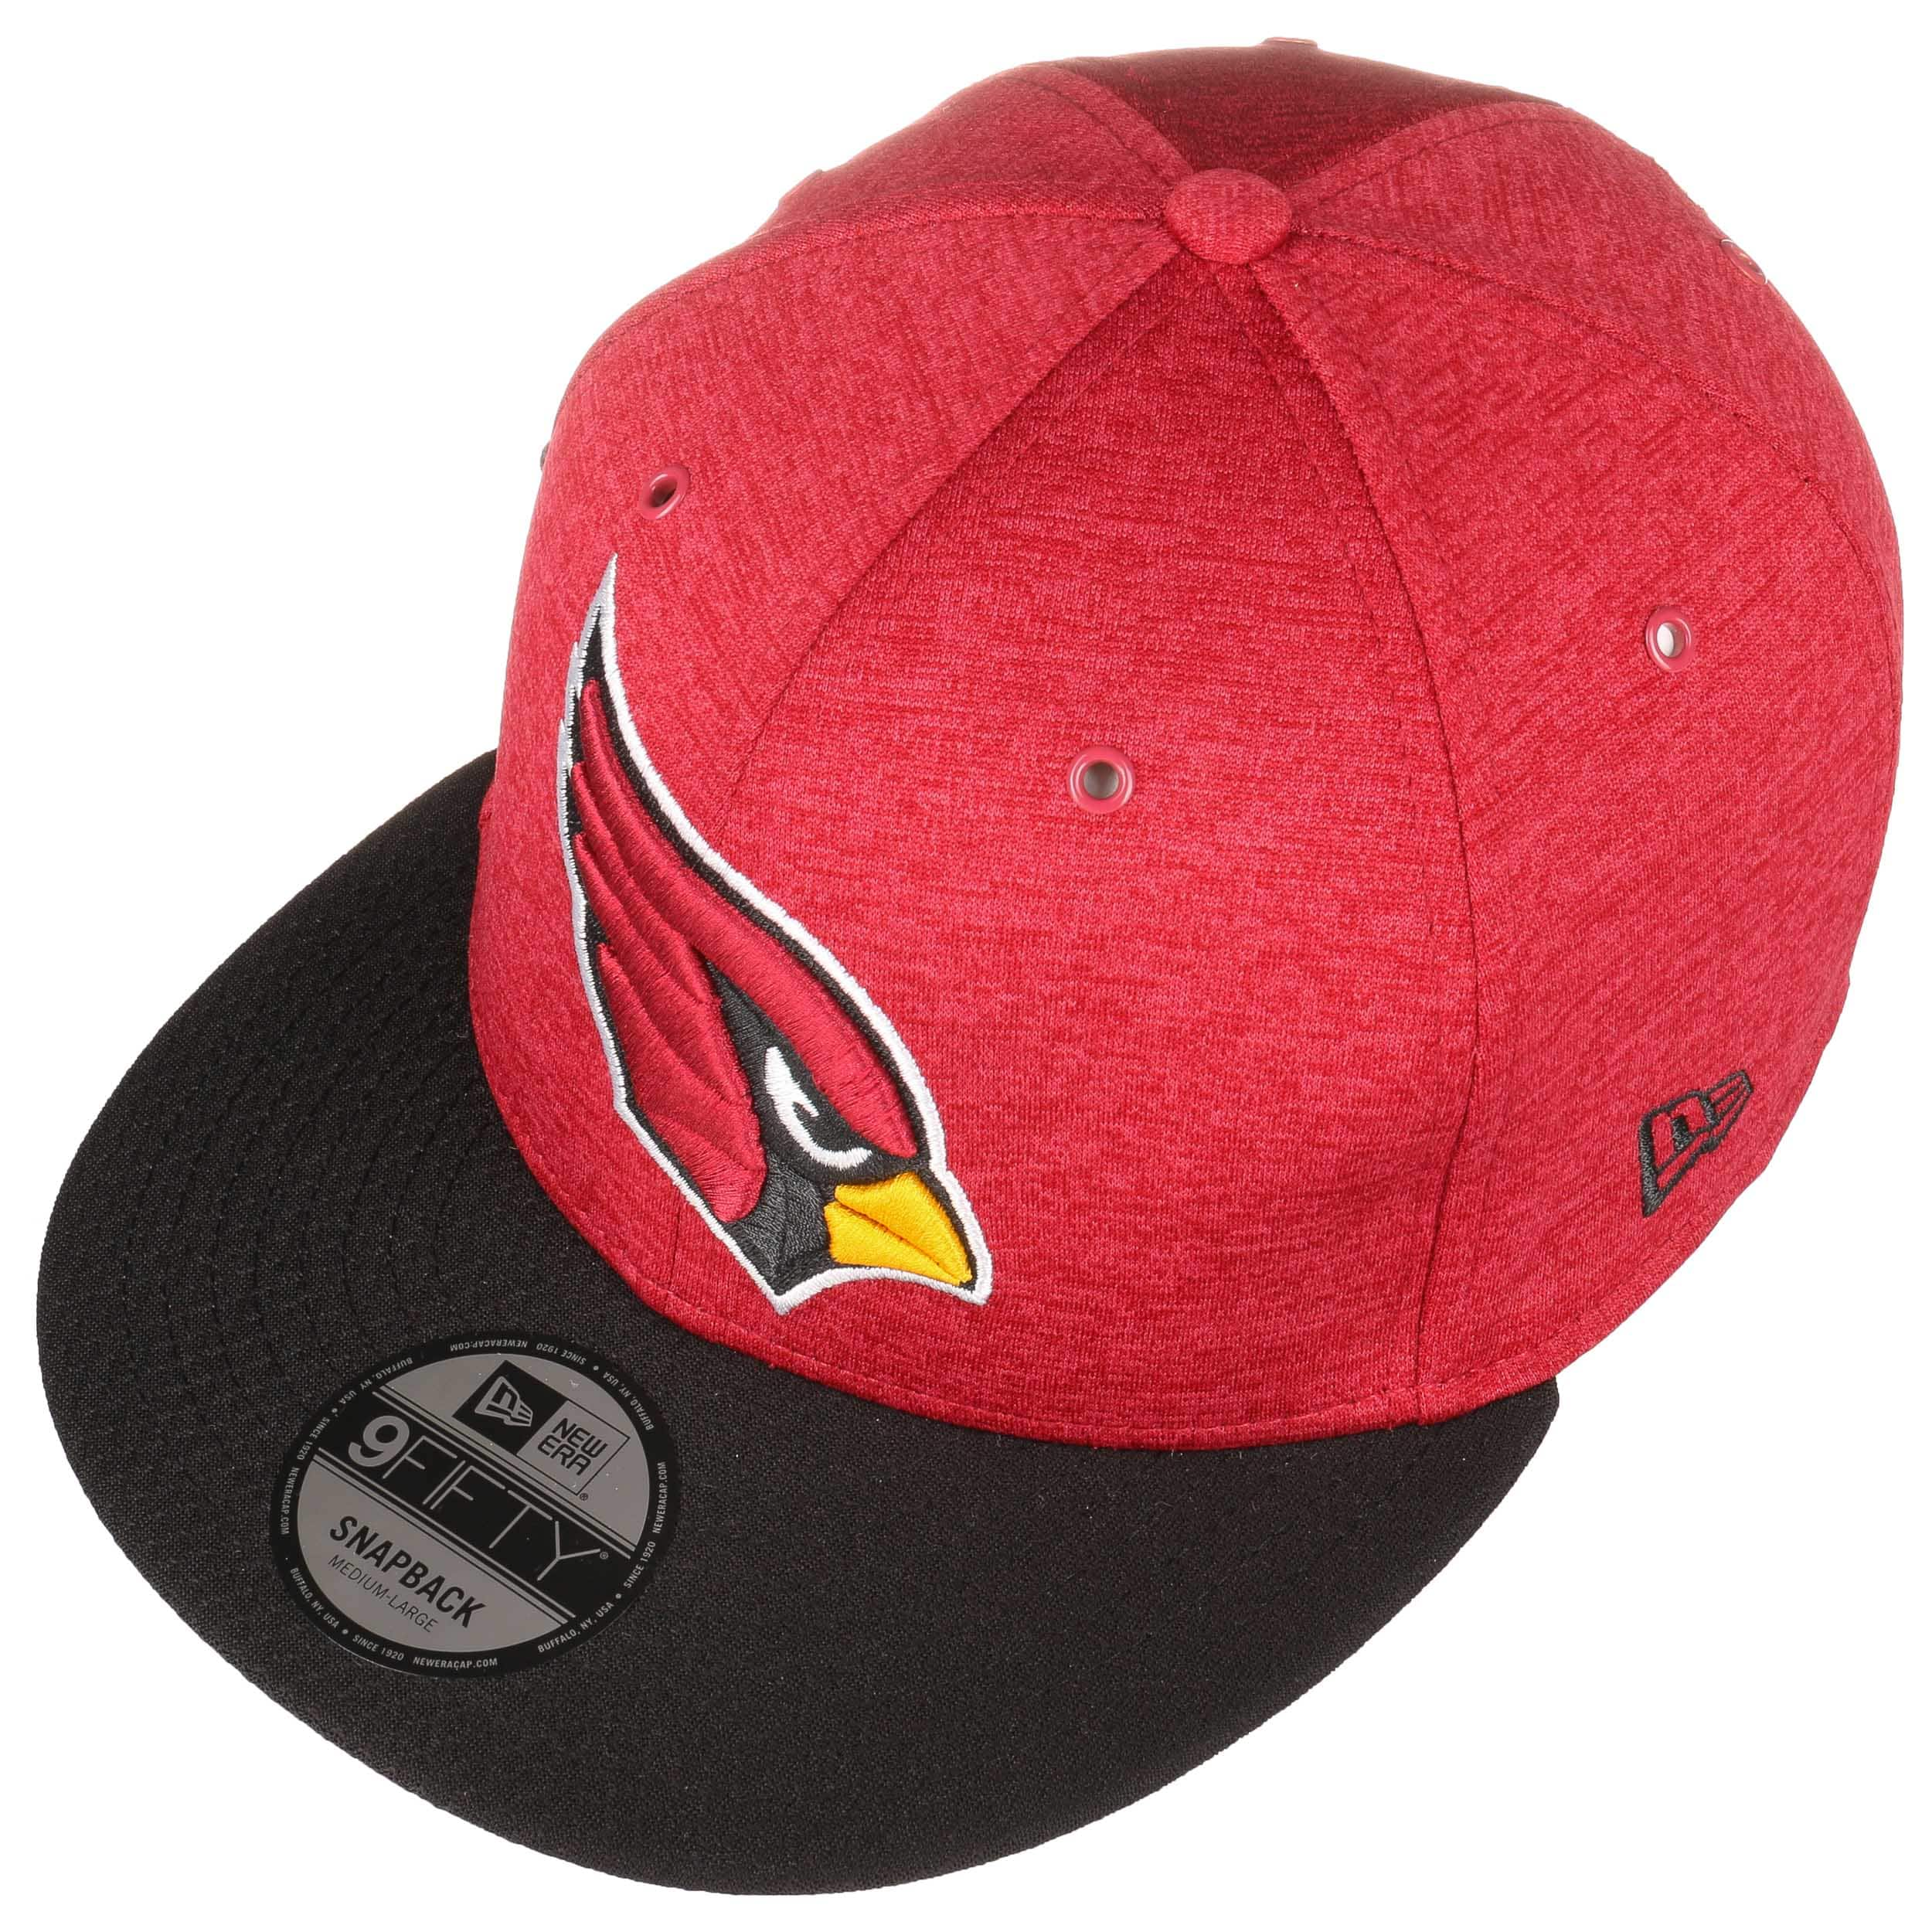 New Era Maroon Red Dunkelrot Blanc Blank 59fifty 5950 Fitted Cap Kappe Mens New